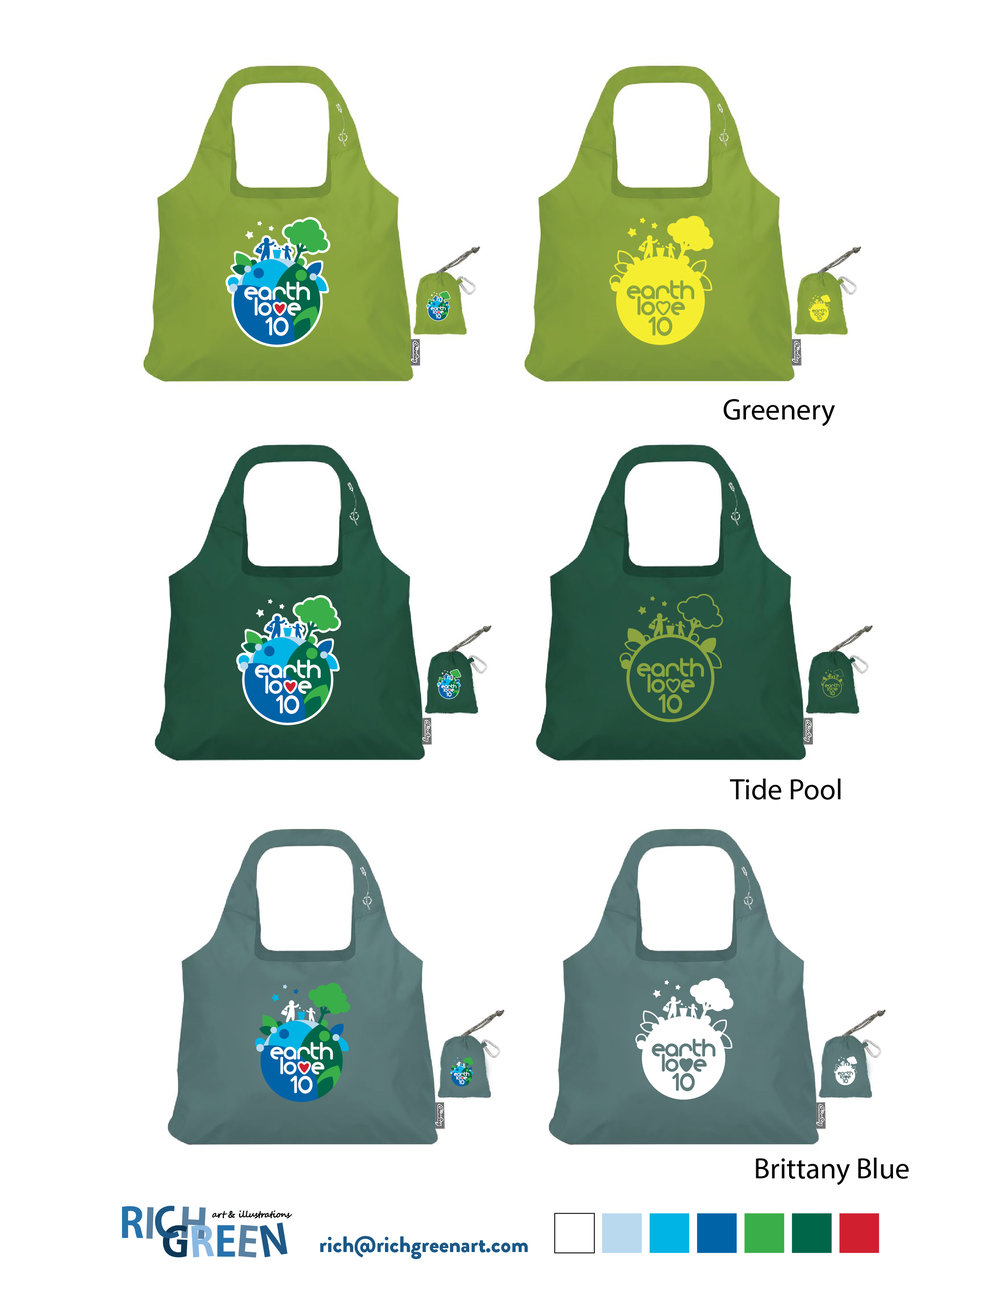 Earth Love 10 product mock ups 02-05.jpg